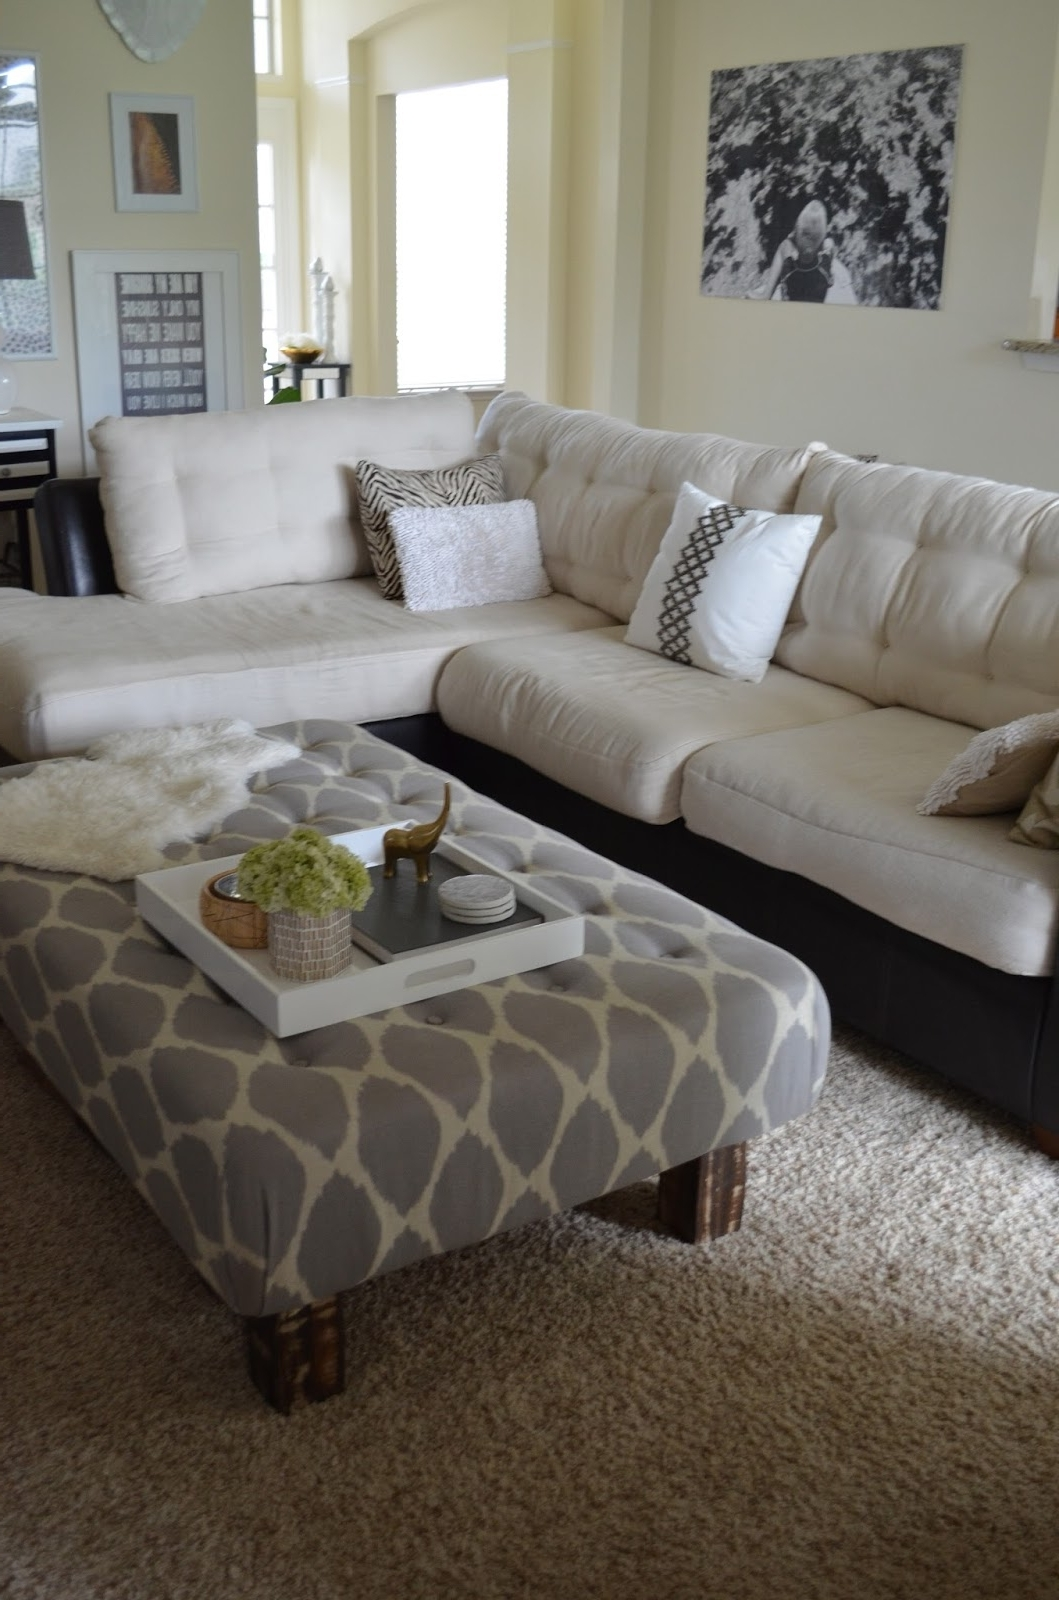 Furniture : Craigslist Sofa La Ethan Allen Futon Sofa Tufted Throughout Trendy Kamloops Sectional Sofas (View 2 of 15)